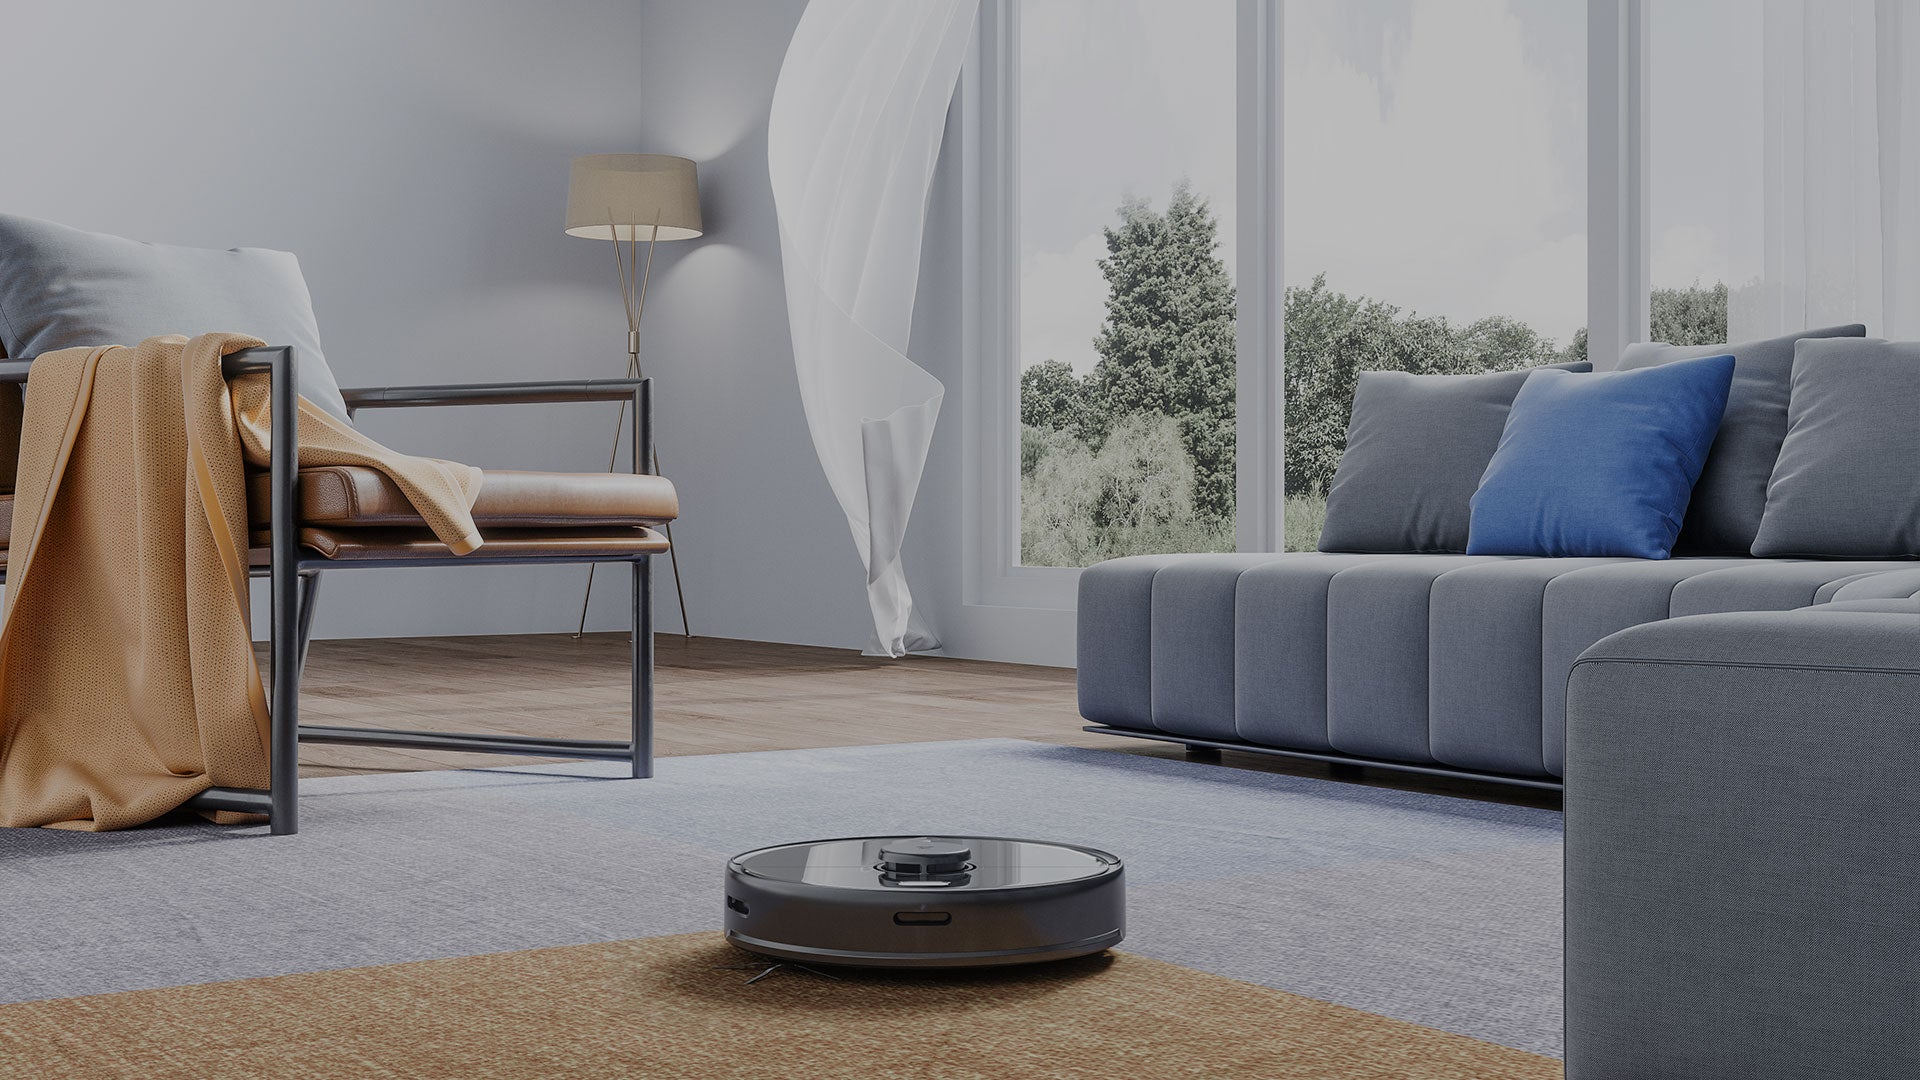 Roborock S5 Max - Every day mopping made easy